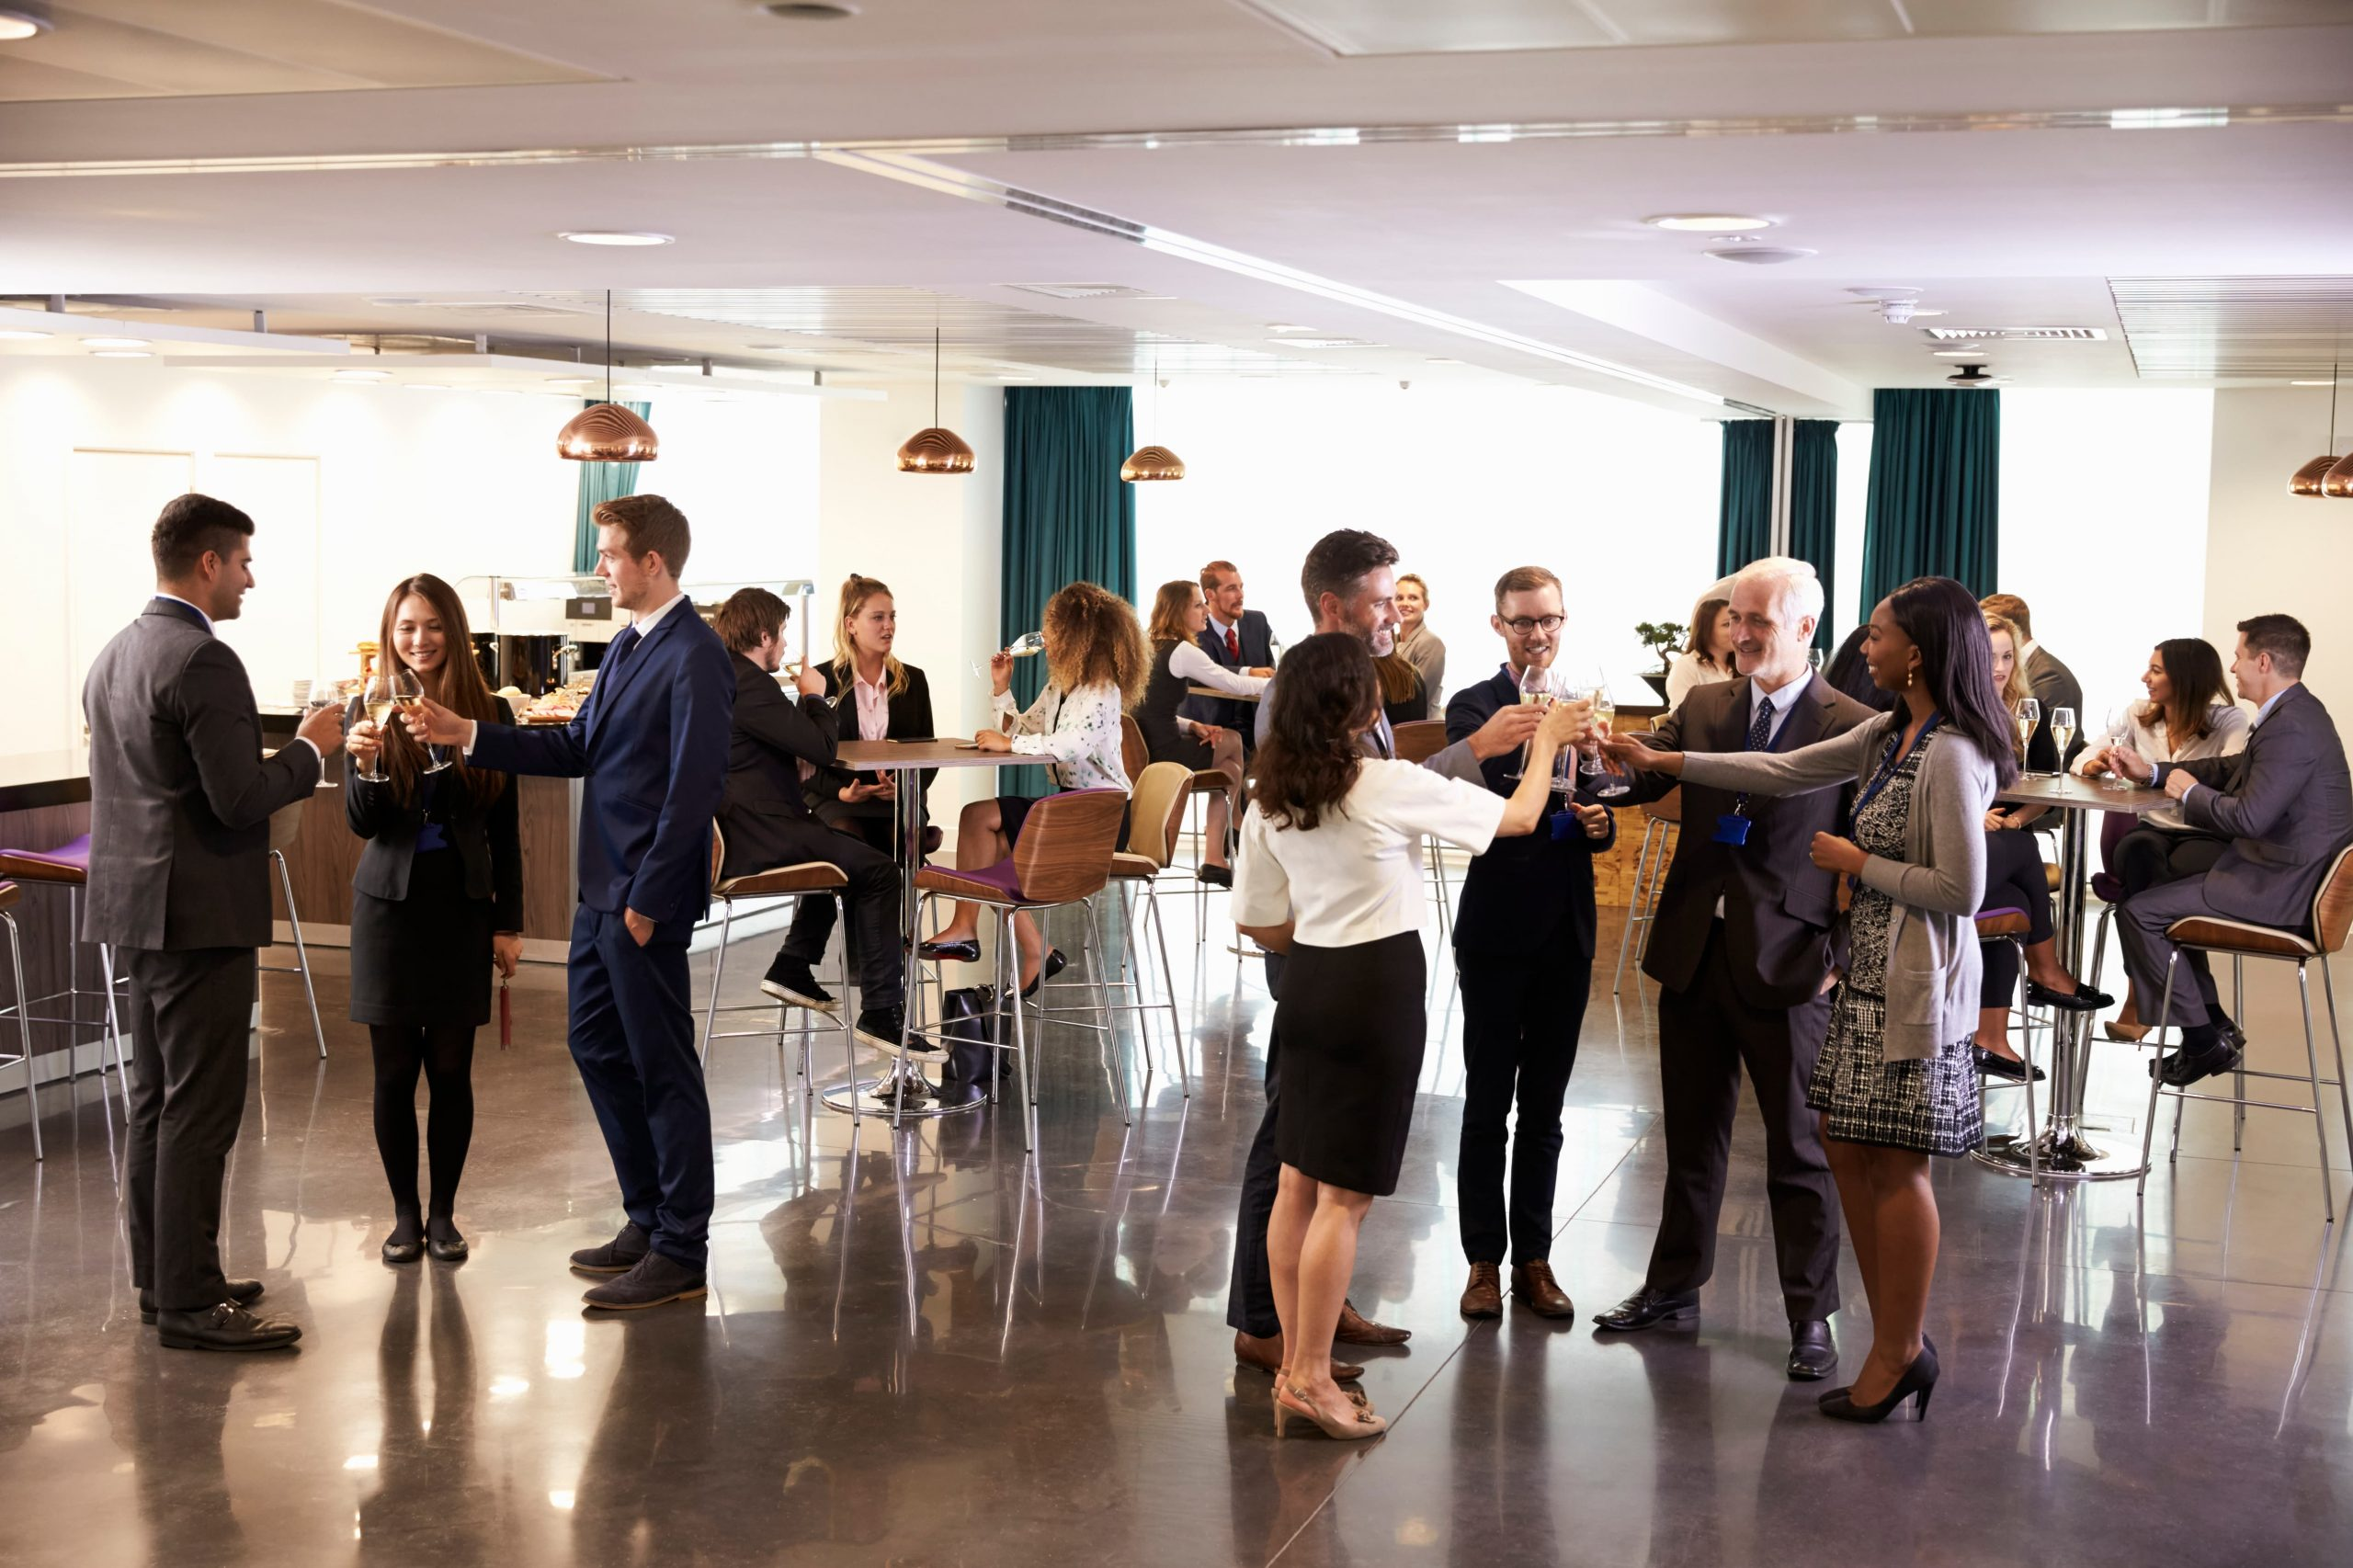 delegates-networking-at-conference-drinks-receptio-P5V59NU